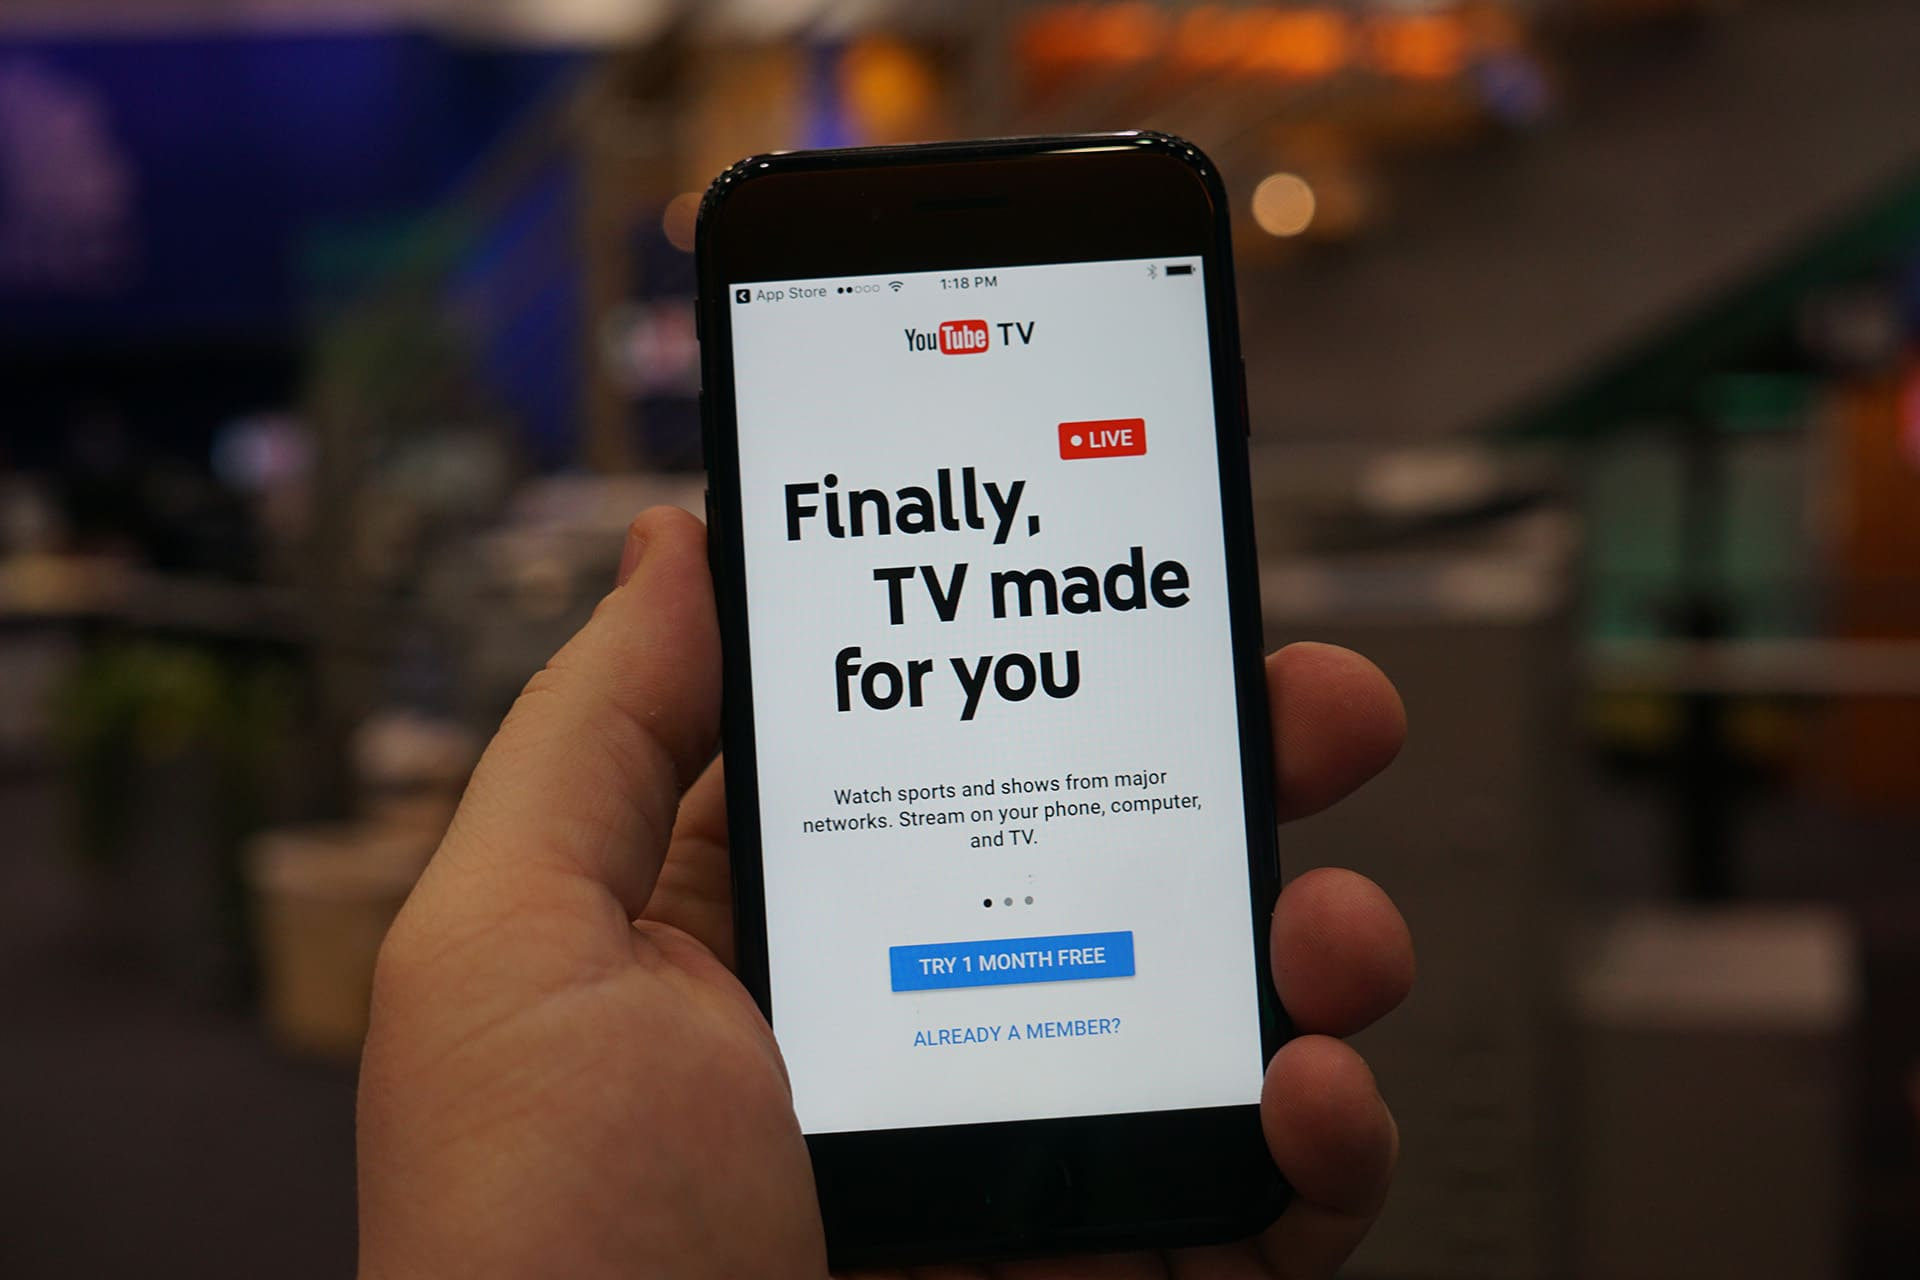 YouTube TV livestreaming service goes nationwide